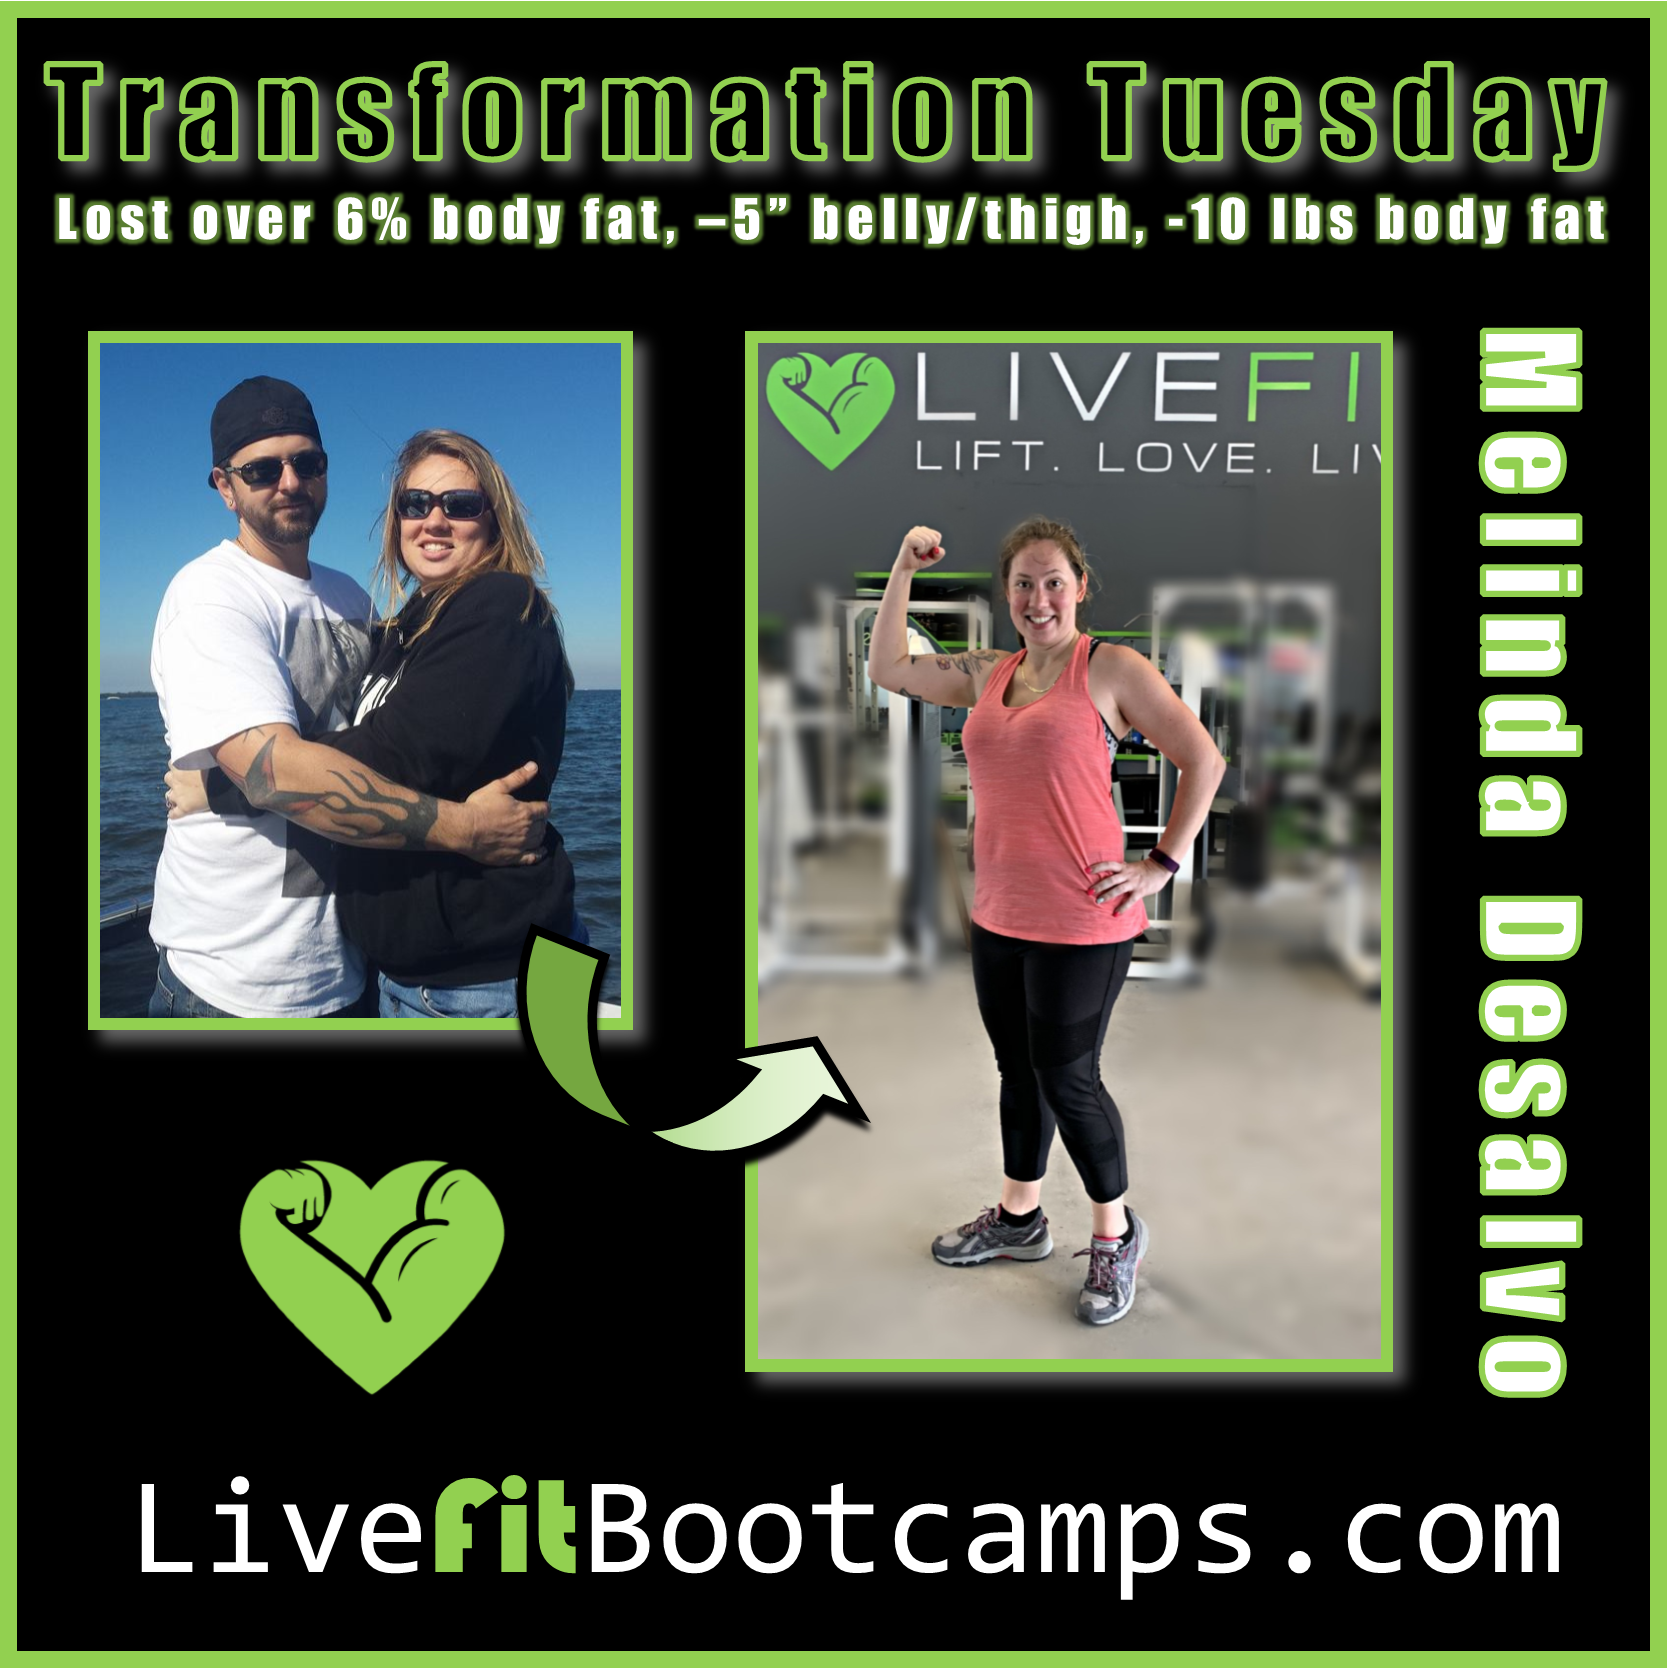 """Just go for it"" Melinda Desalvo Overall Transformation (health & body!)"